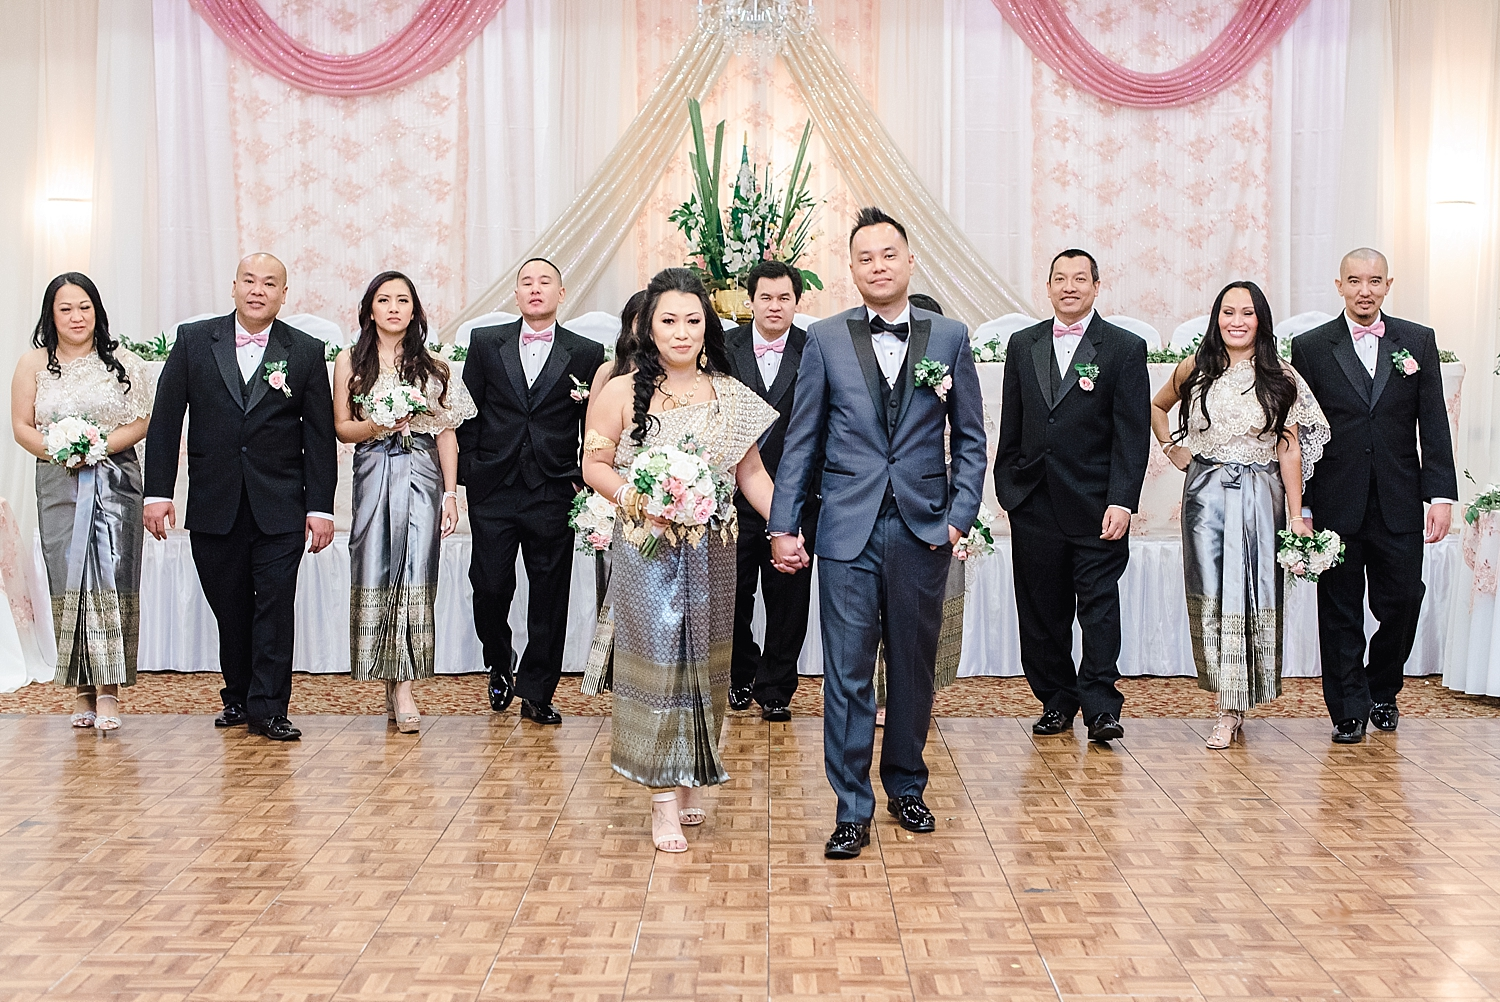 The final stage of the wedding involved family members and friends tying the bride and groom's left and right wrists with blessing strings, offering praises and well-wishes of happiness, good health, success, prosperity, and long-lasting love.